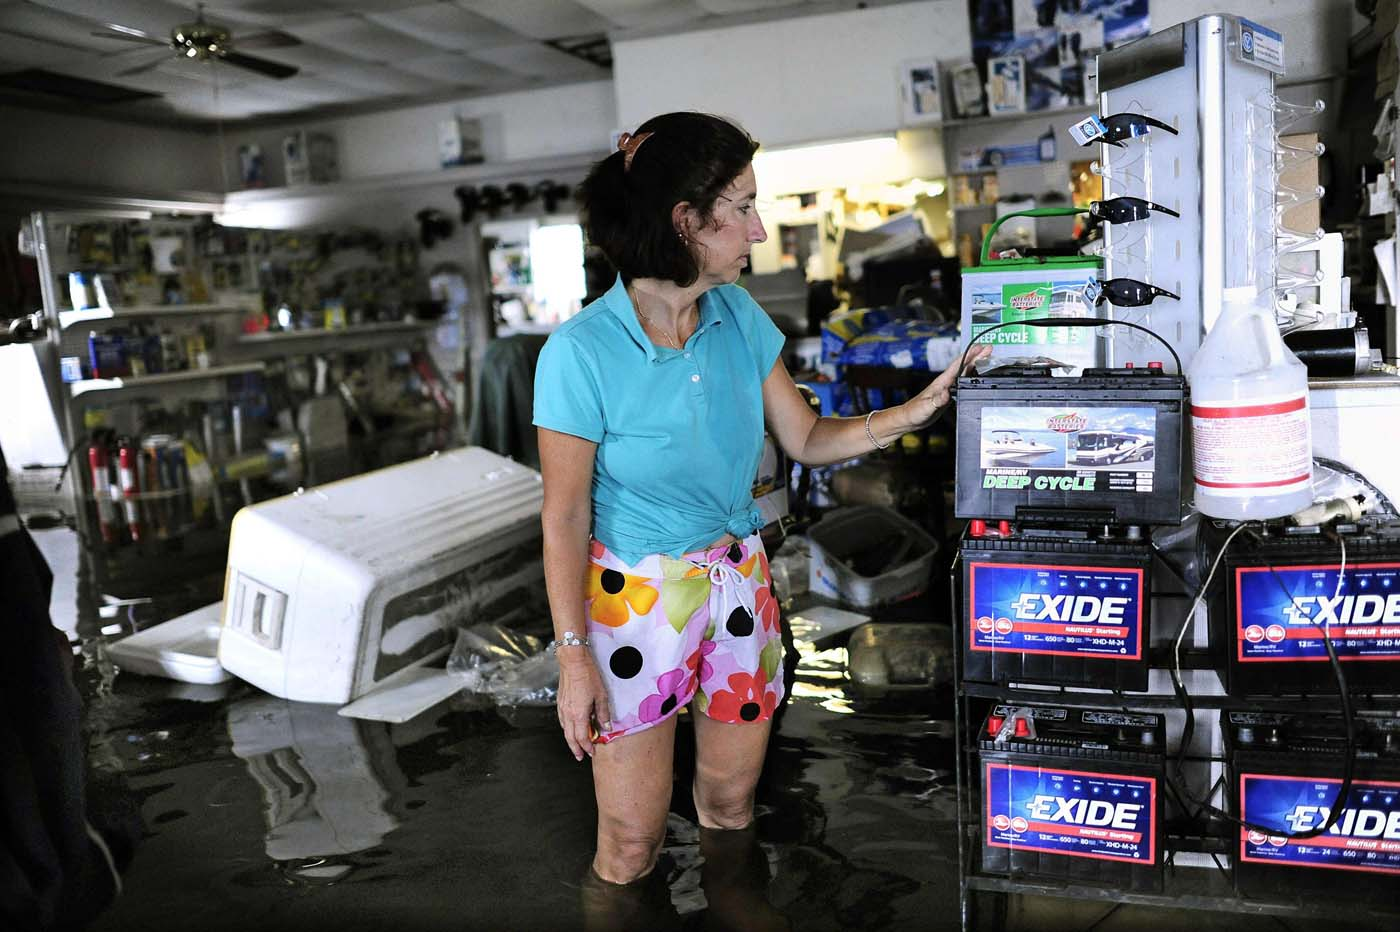 Doreen Mylin, owner of the Magic Manatee Marina, inspects the damage as the water associated with Tropical Storm Debby rises and floods her business in Homosassa, Florida, June 26, 2012. (Brian Blanco/Reuters)